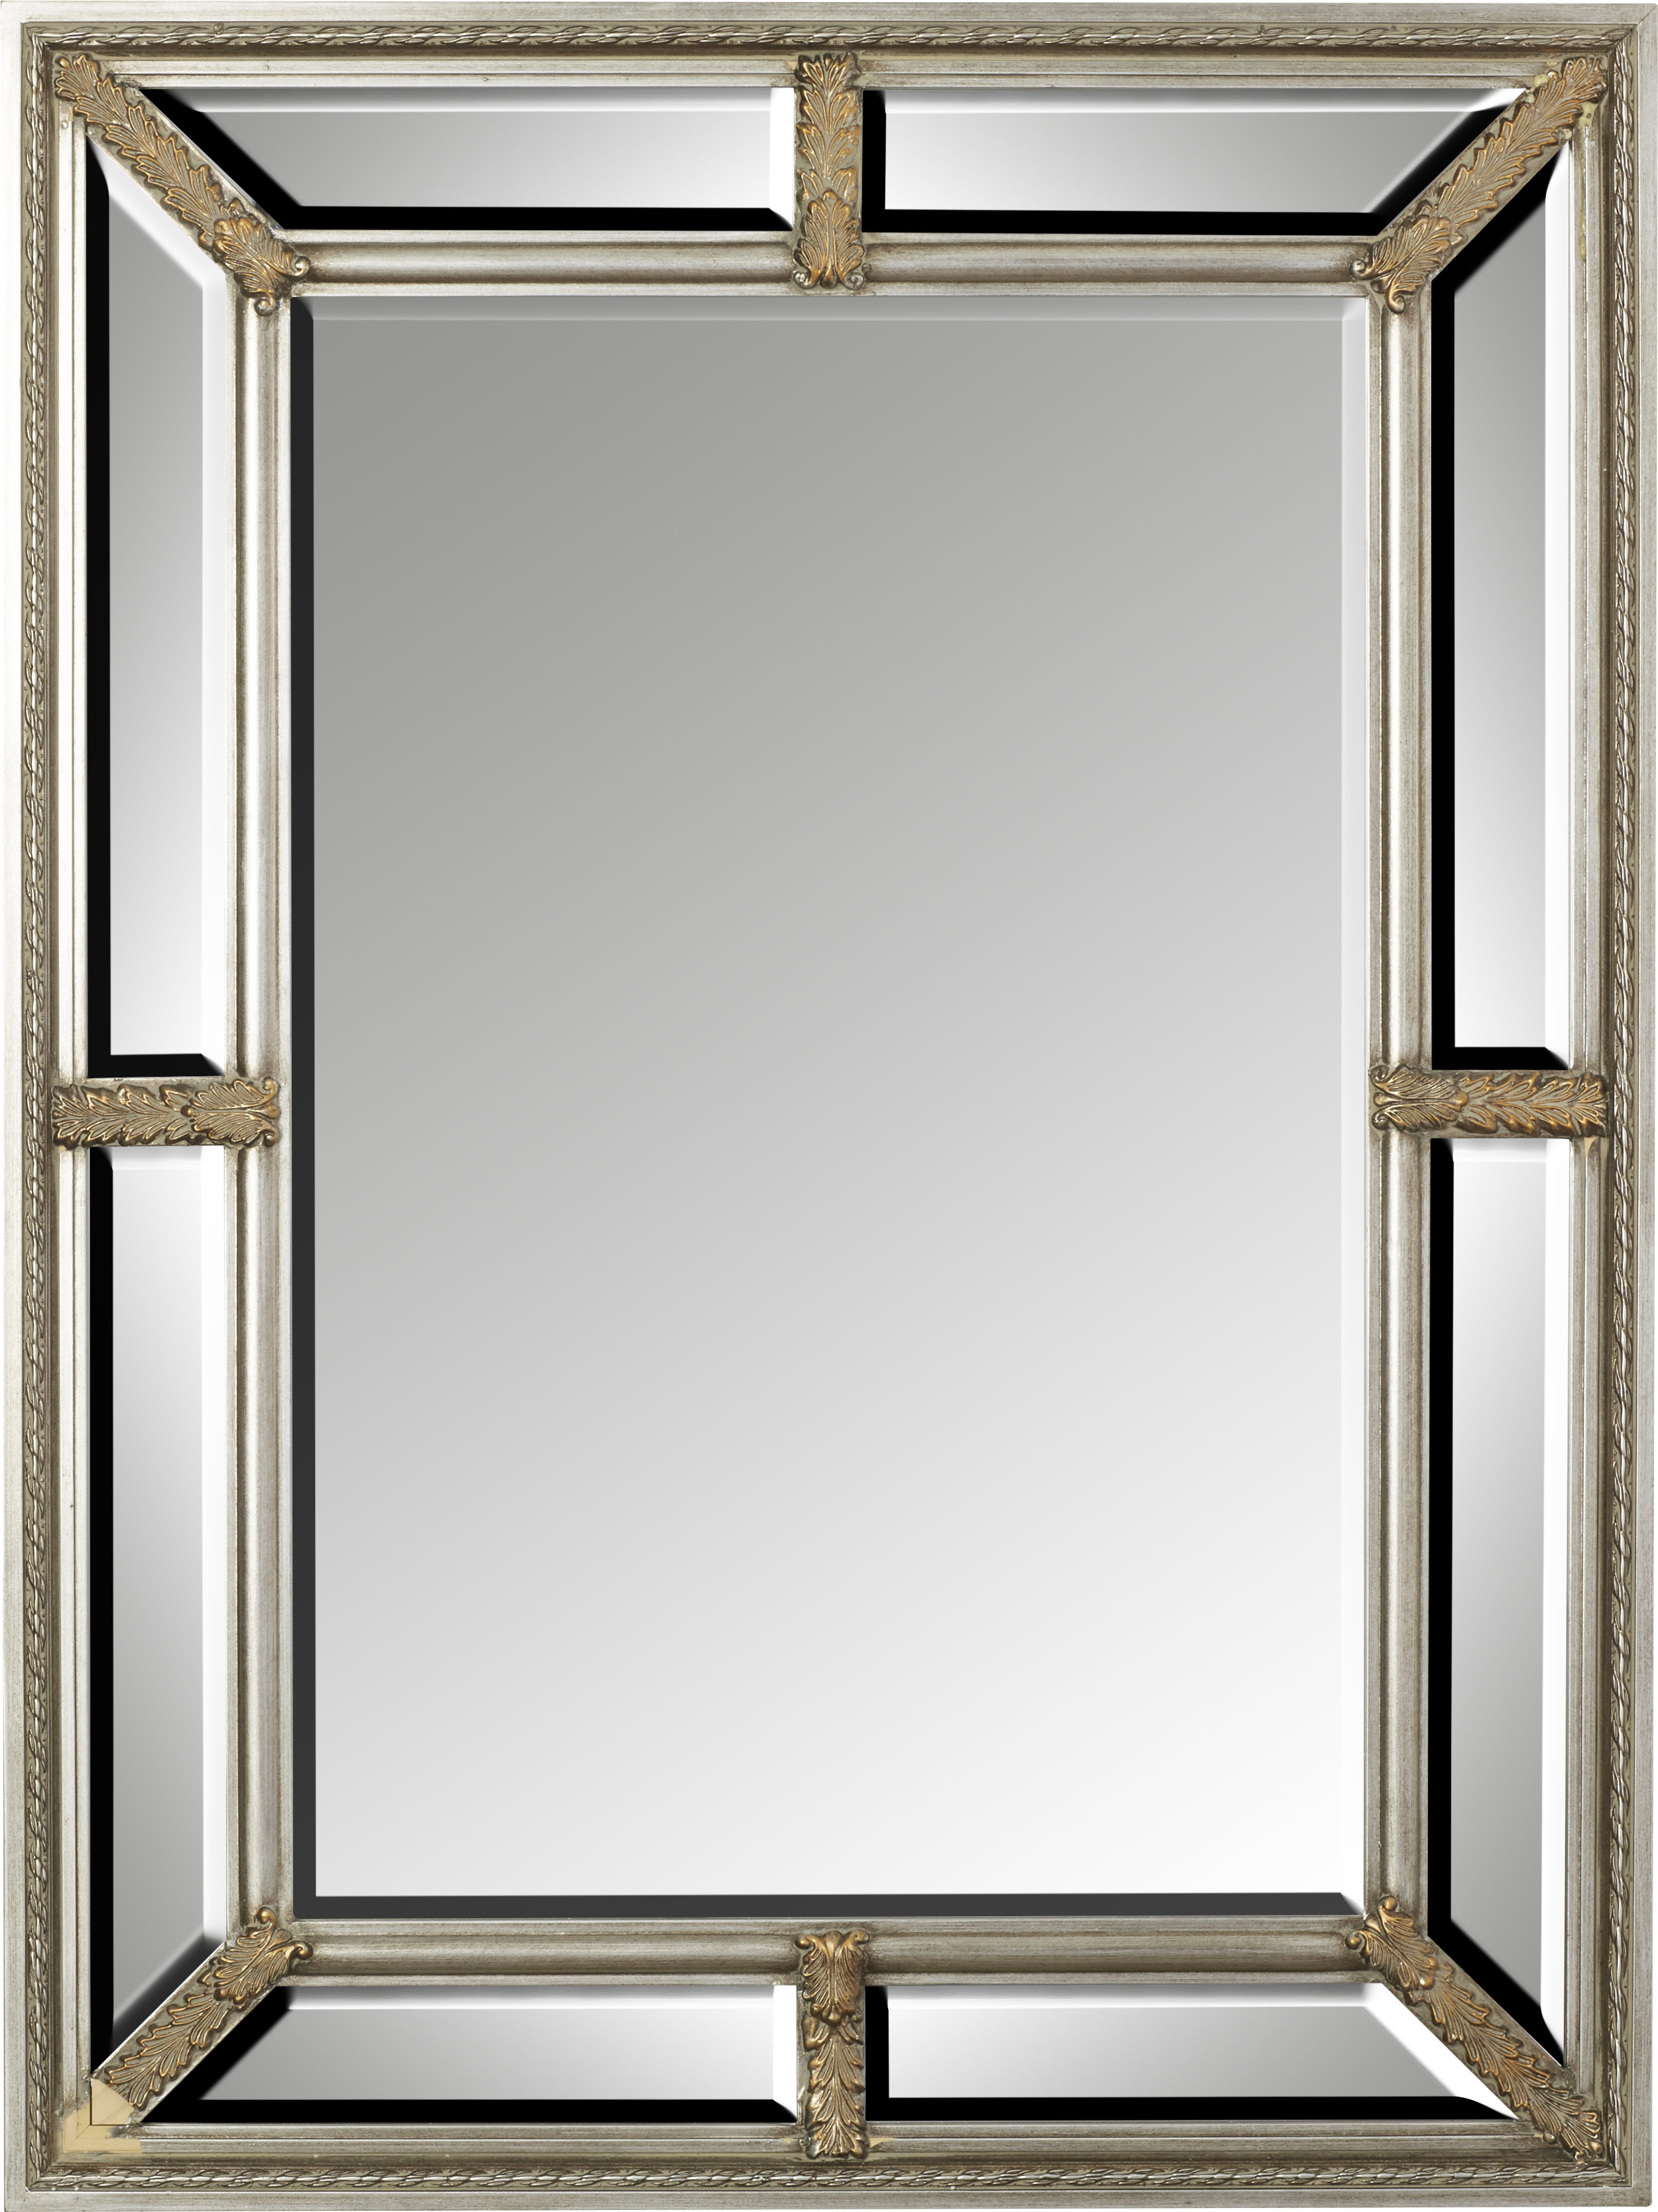 Beaston Accent Mirror | Joss & Main regarding Boyers Wall Mirrors (Image 4 of 30)